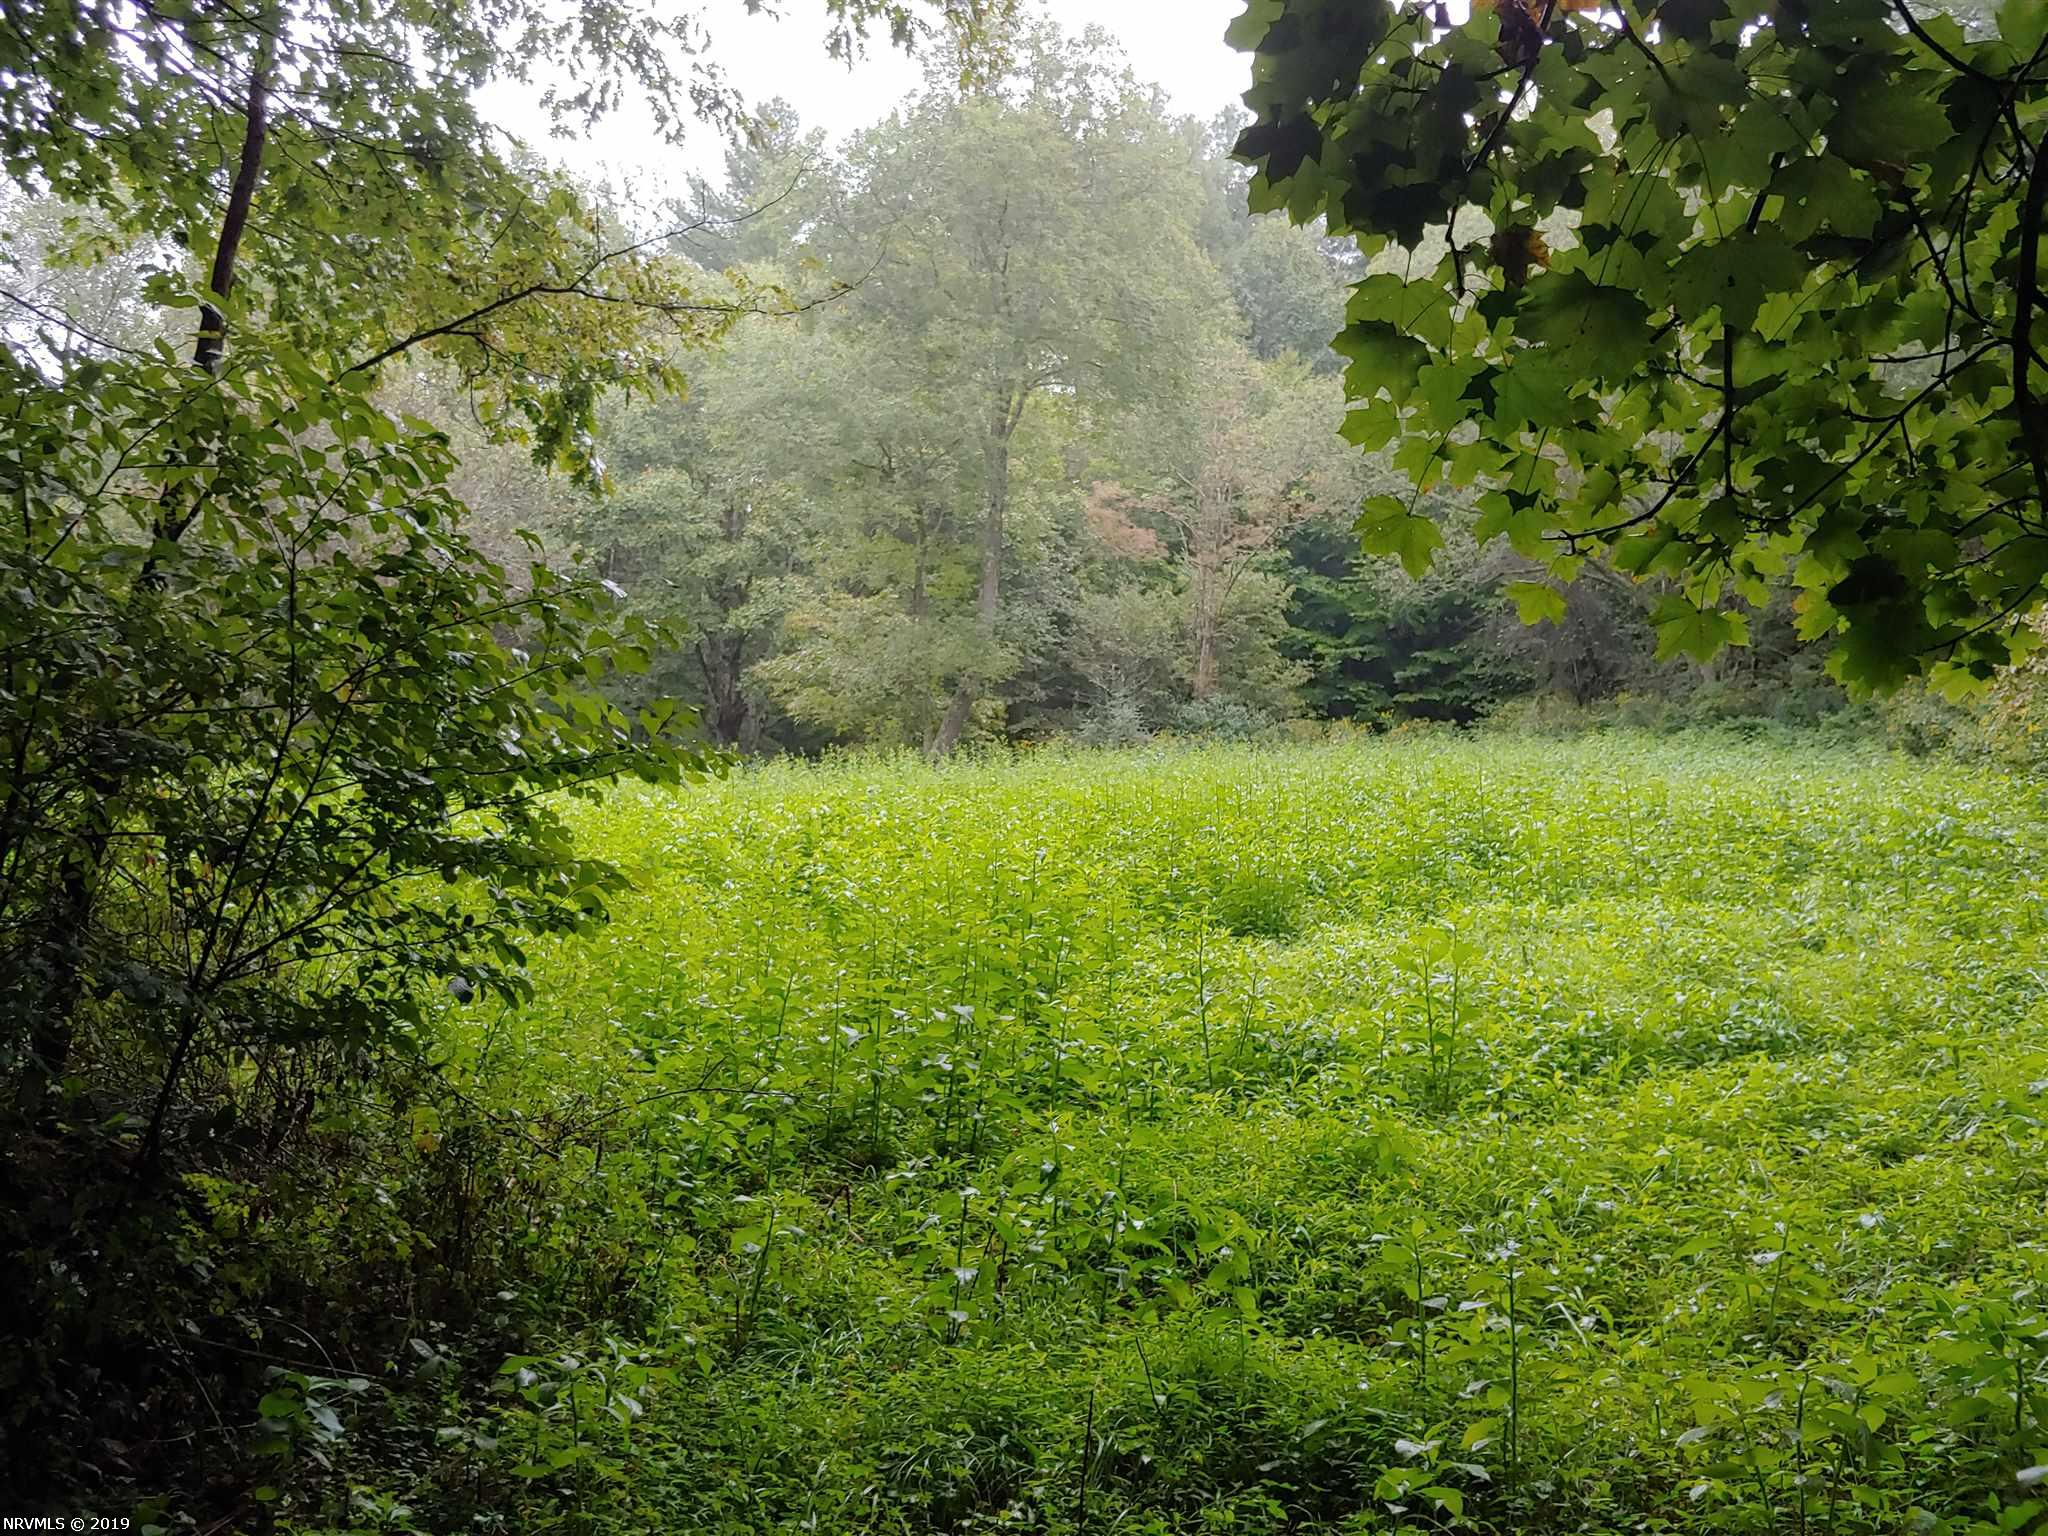 Recreational Property with an abundance of wildlife! A national forest with horse trails is within 2-3 miles of this location. Would be a great secluded home site as well. Build your dream country home here in the mountains of Grayson County!